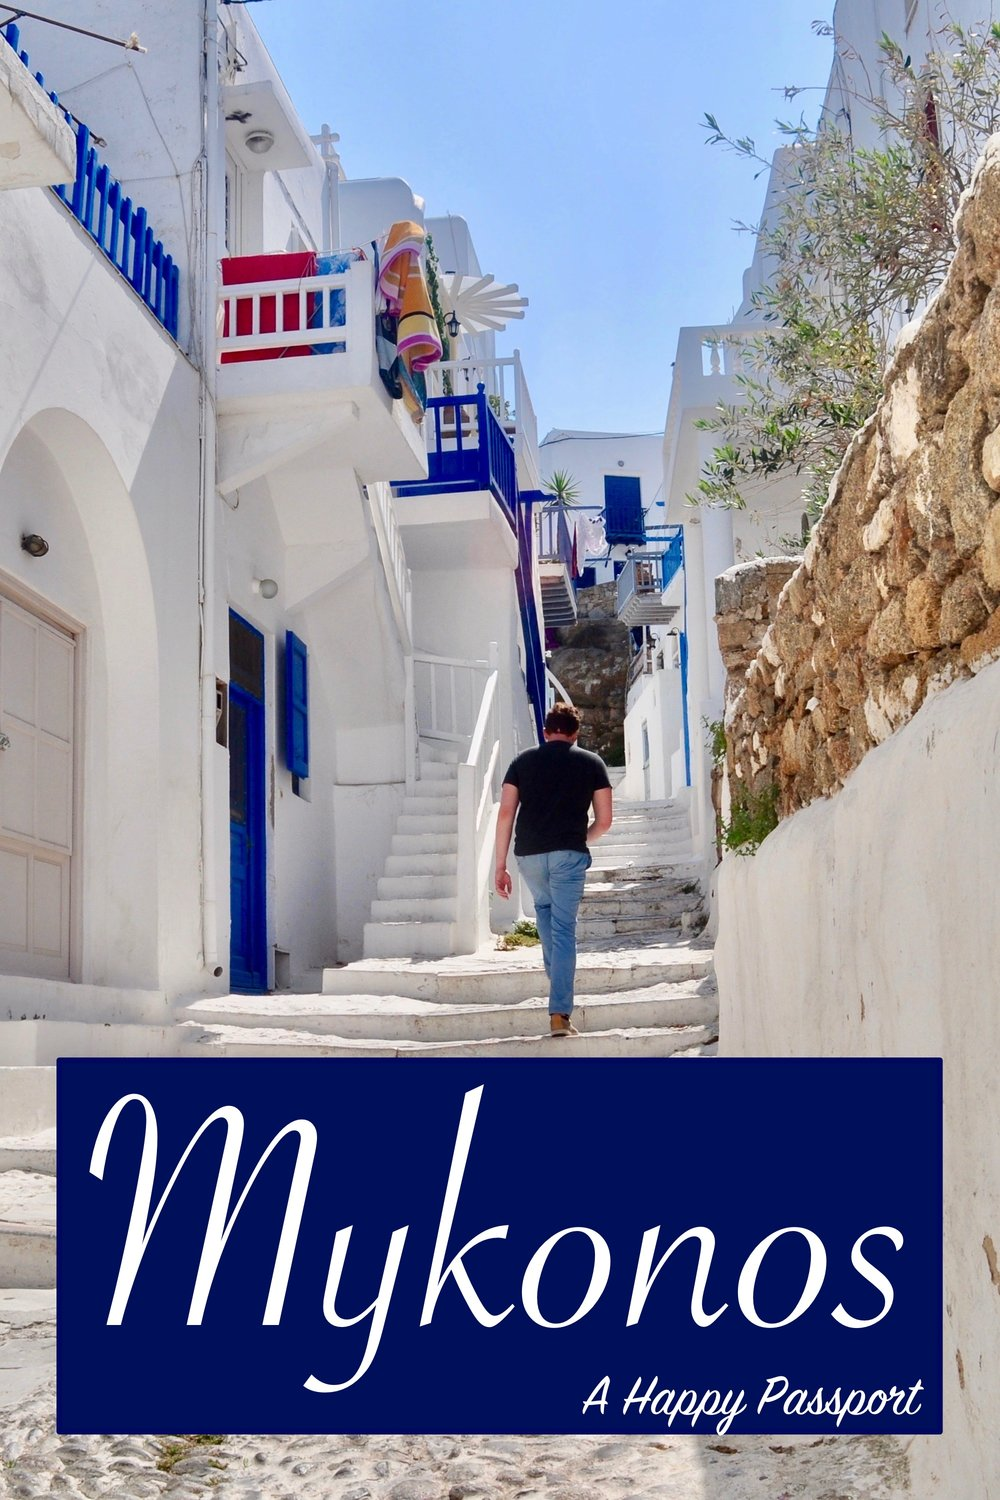 Half-Day in the Stunning Mykonos, Greece - A Happy Passport.  A guide for spending a half-day in Mykonos Town from a cruise ship. #mykonos #Greece #cruise #europe #travel